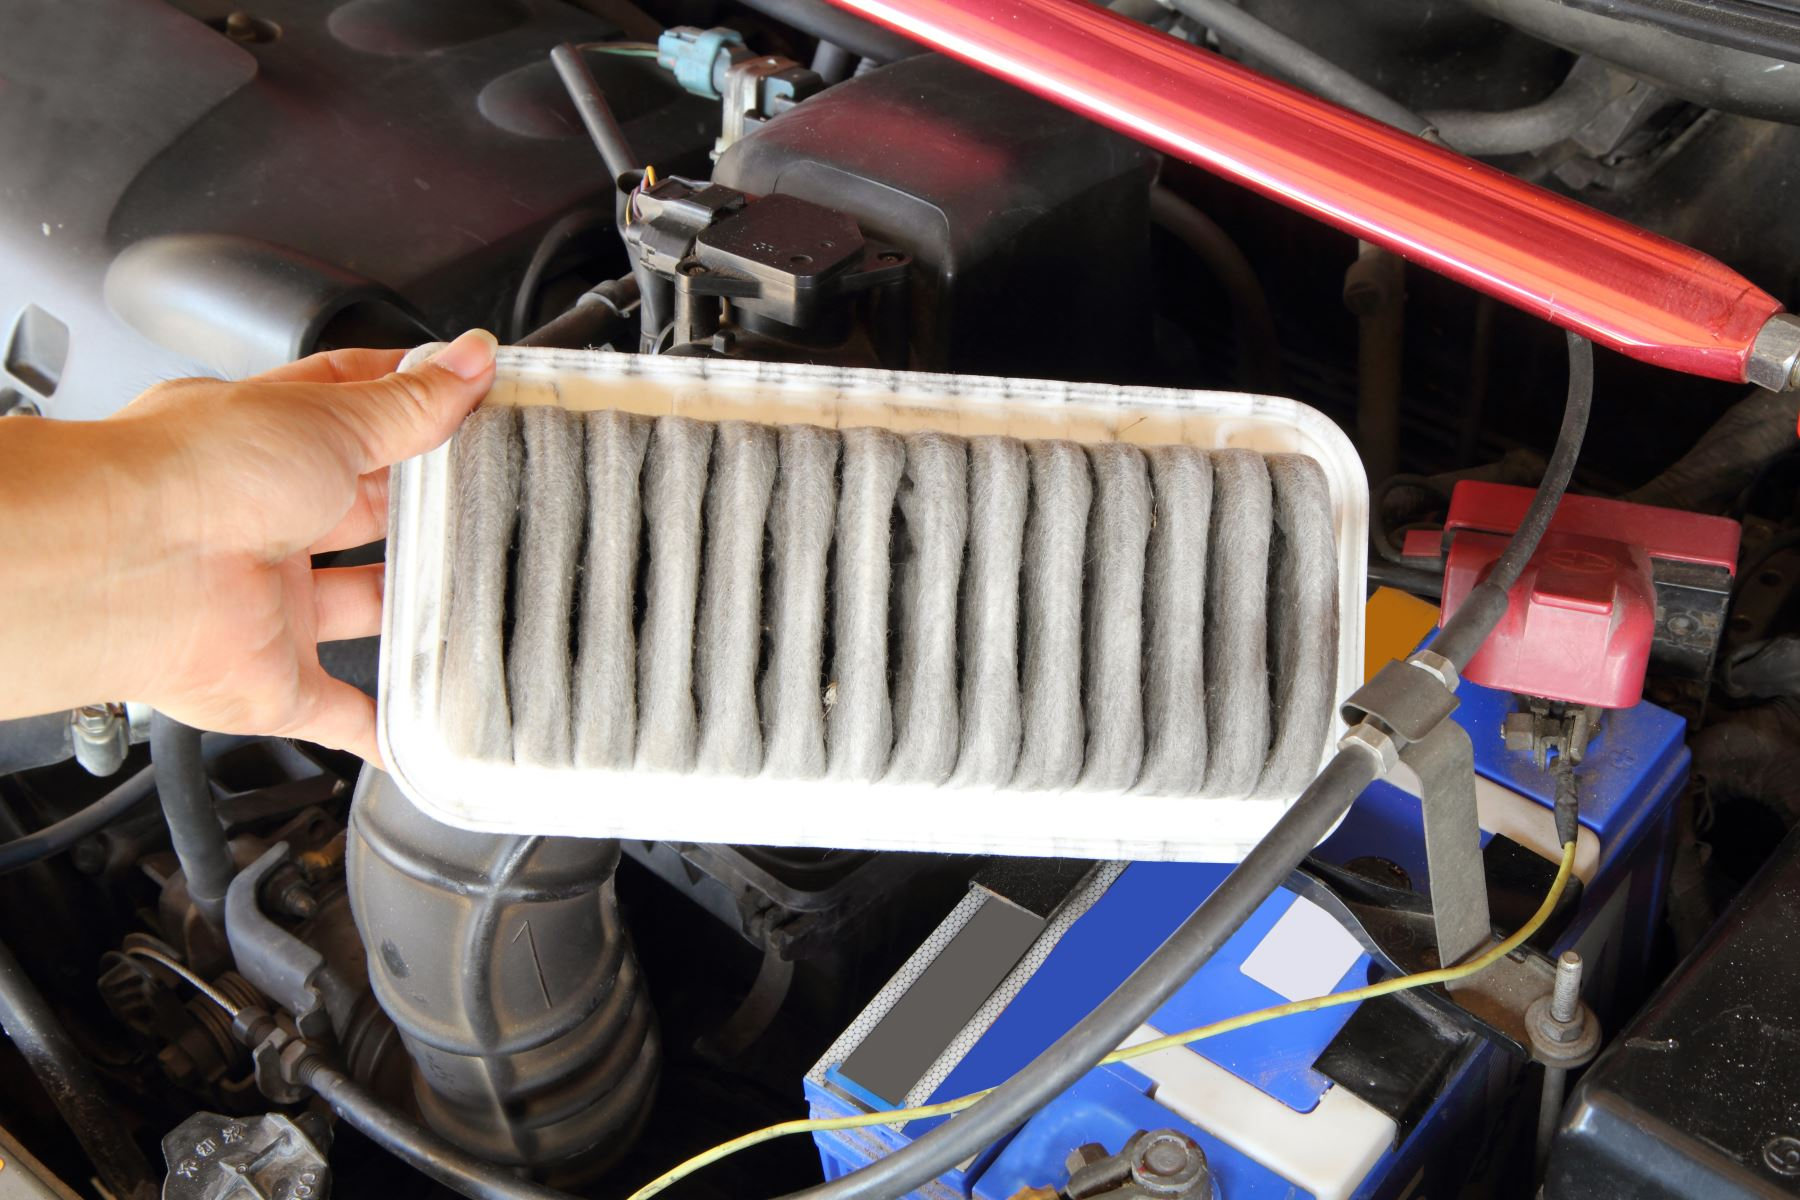 How a Dirty Air Filter Affects Performance